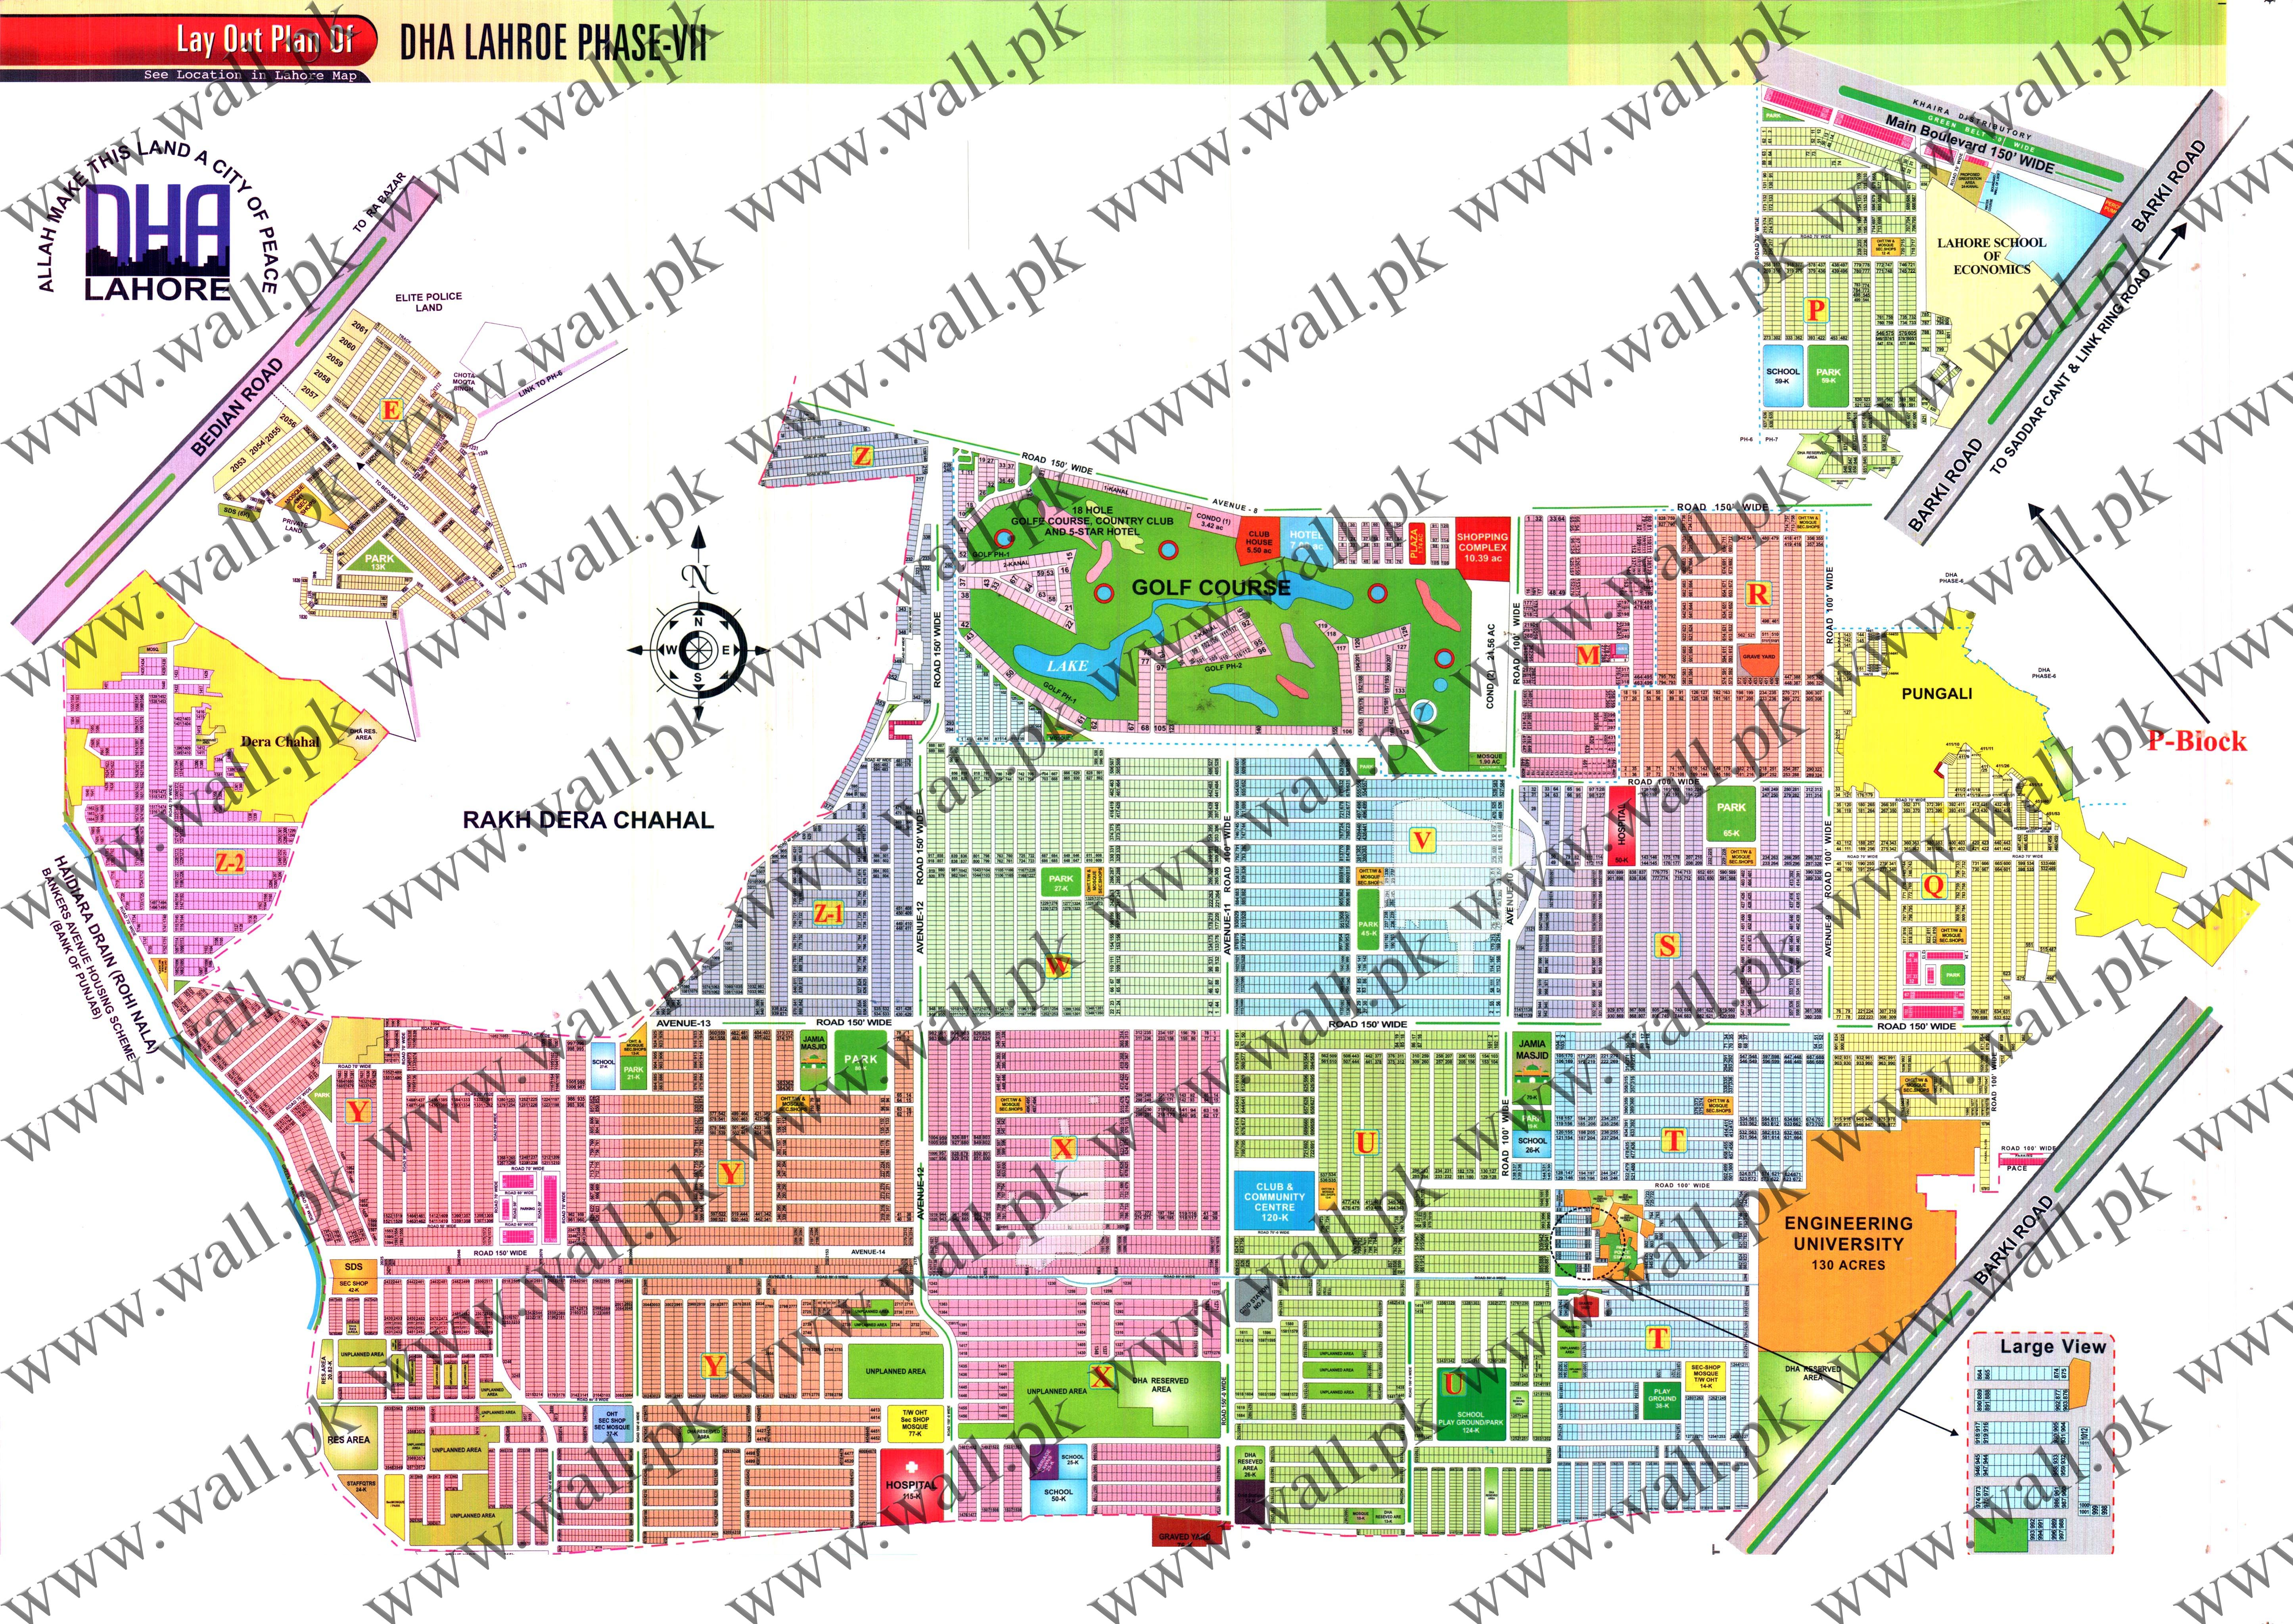 Latest Map Of DHA Lahore Phase 7, Location, New Map